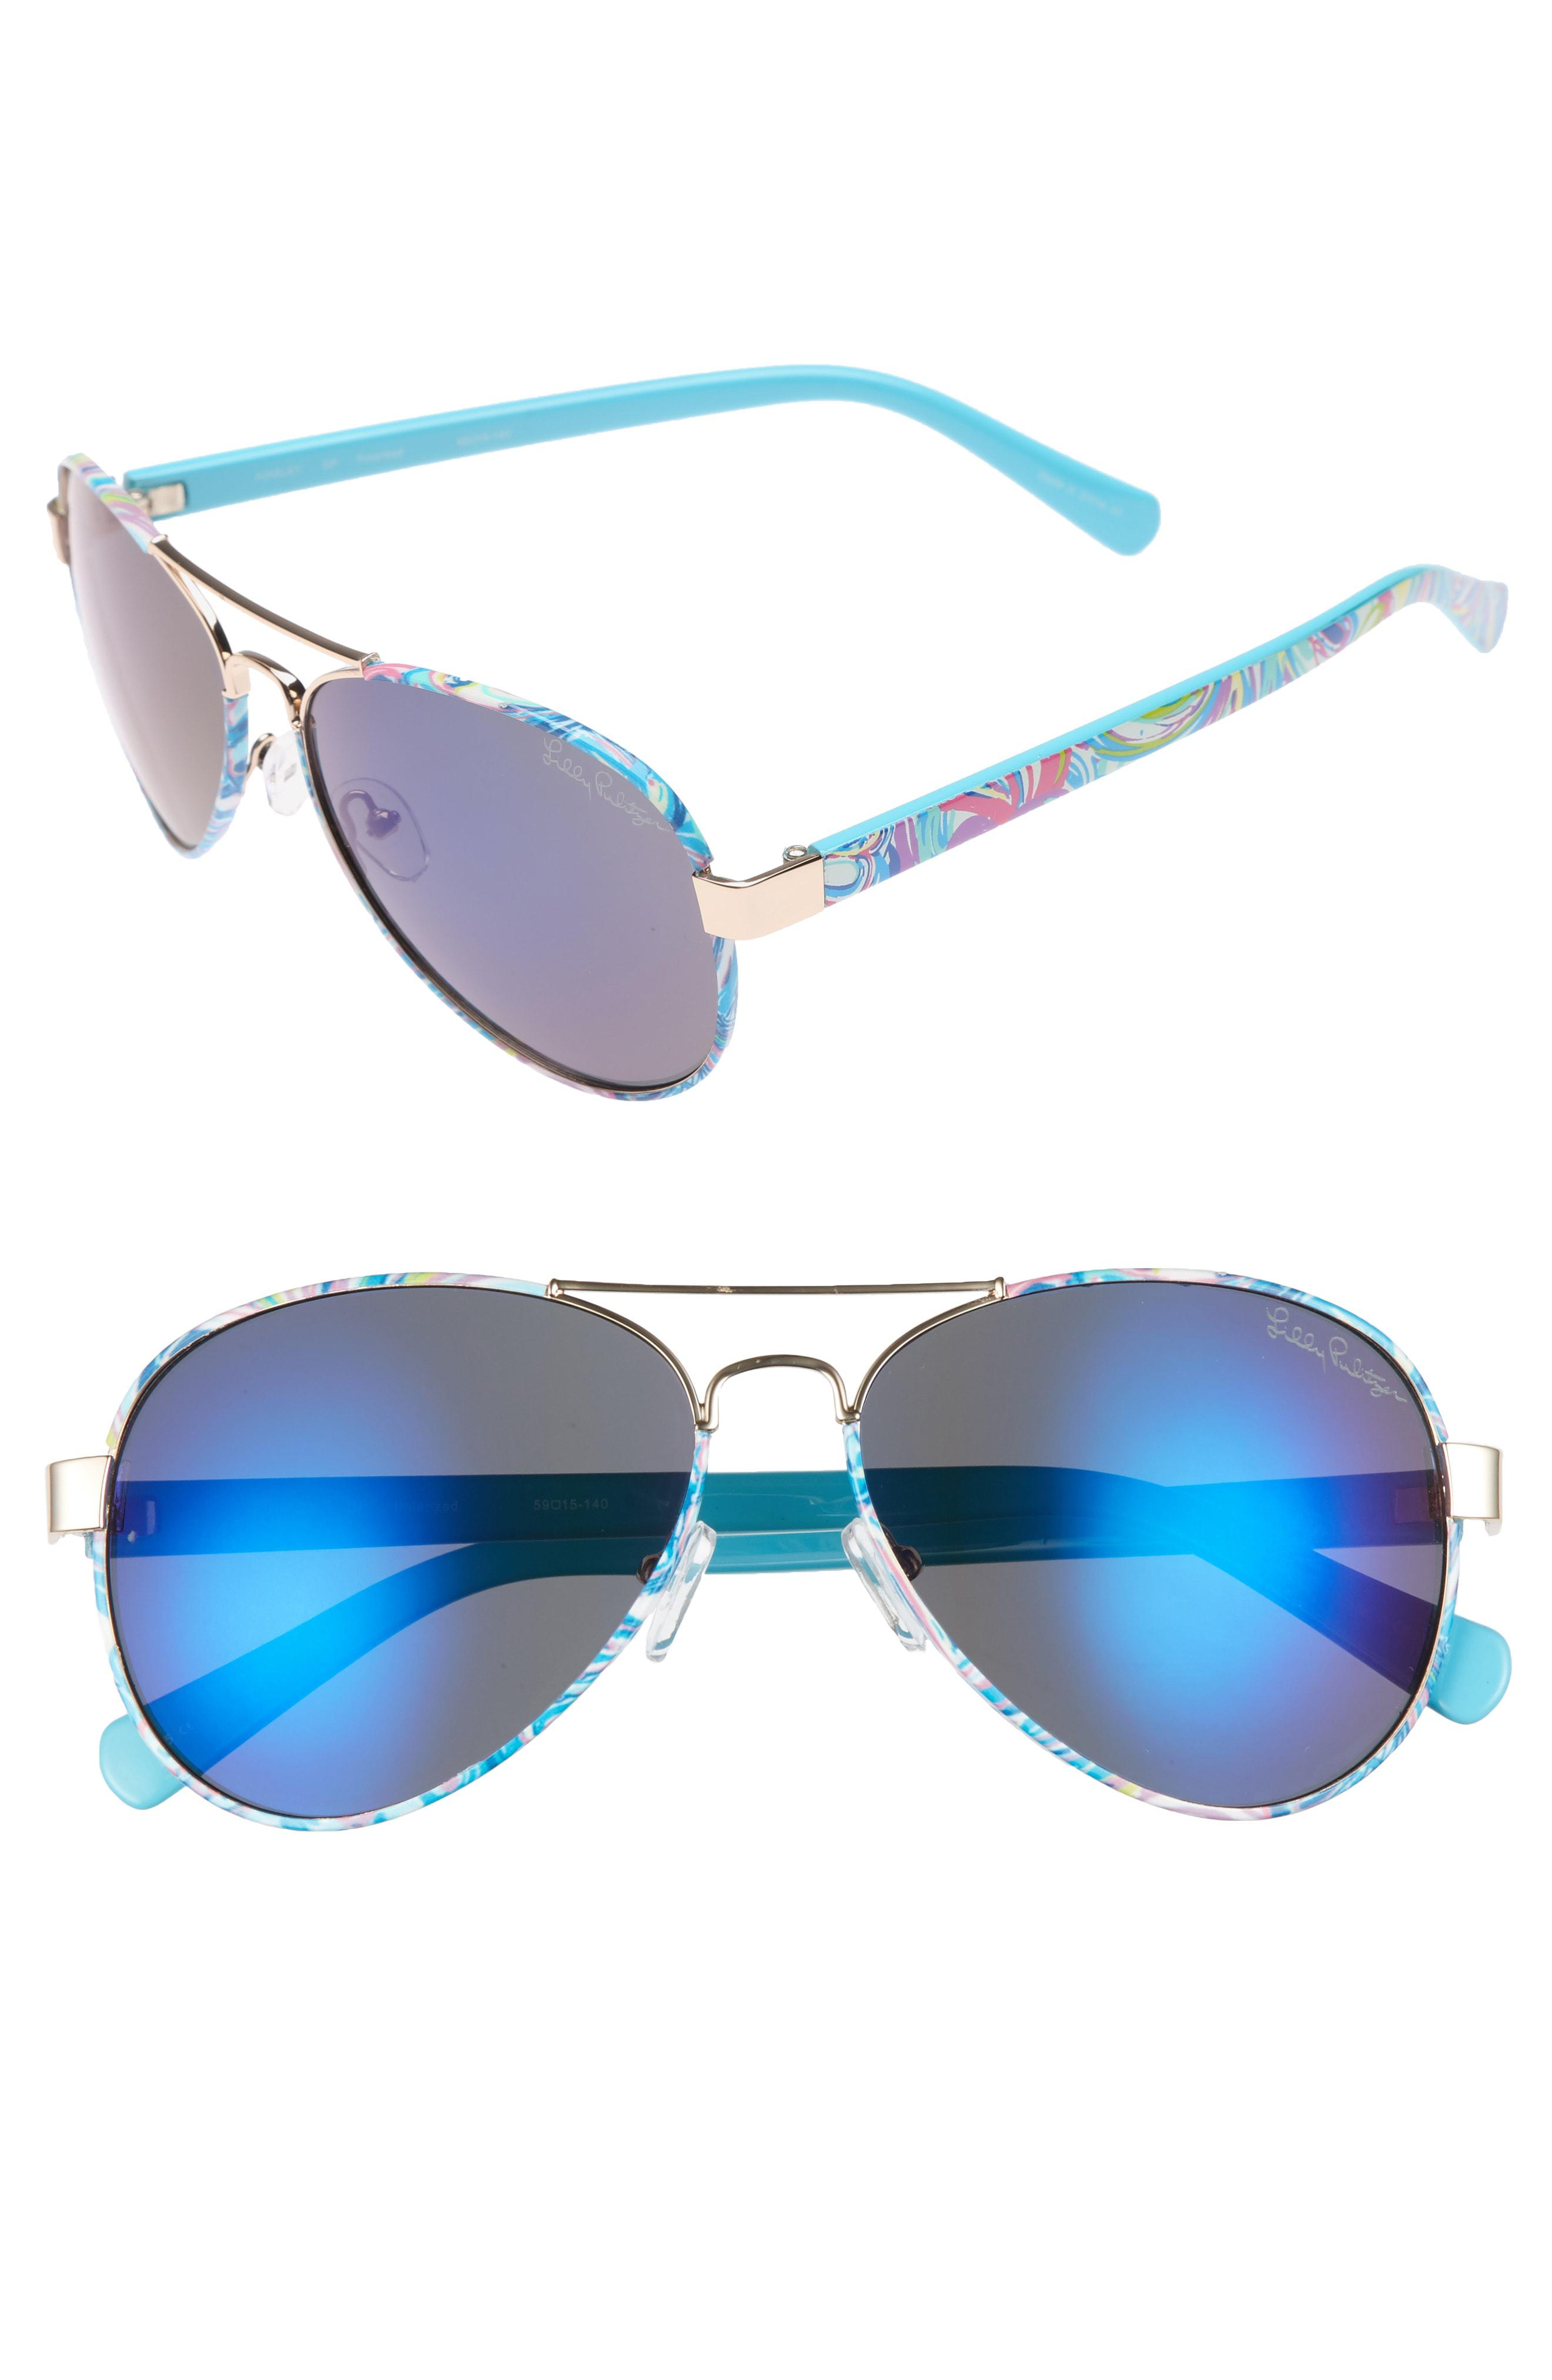 1ab3fcdc891 Lilly Pulitzer. Women s Blue Lilly Pulitzer Ainsley 59mm Polarized Aviator  Sunglasses